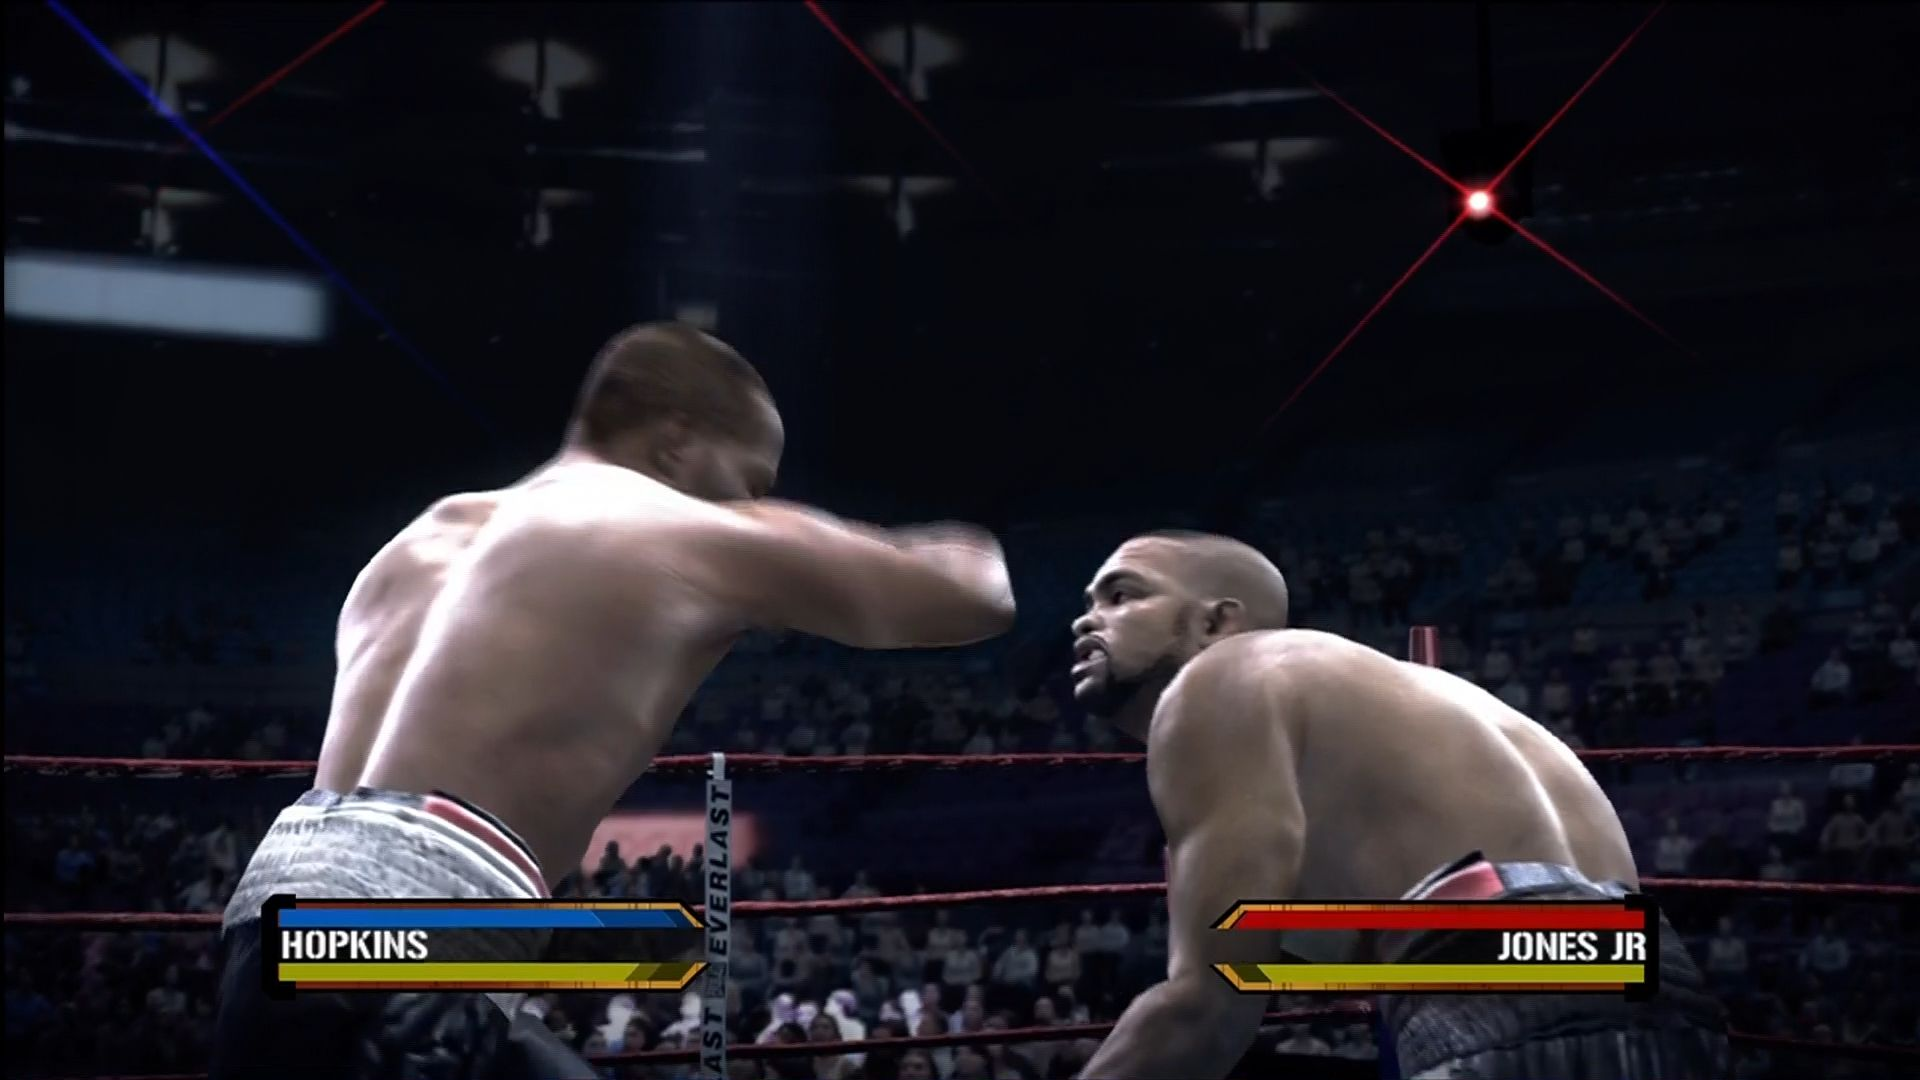 Fight Night Round 3 Xbox 360 Optional HUD toggled on.